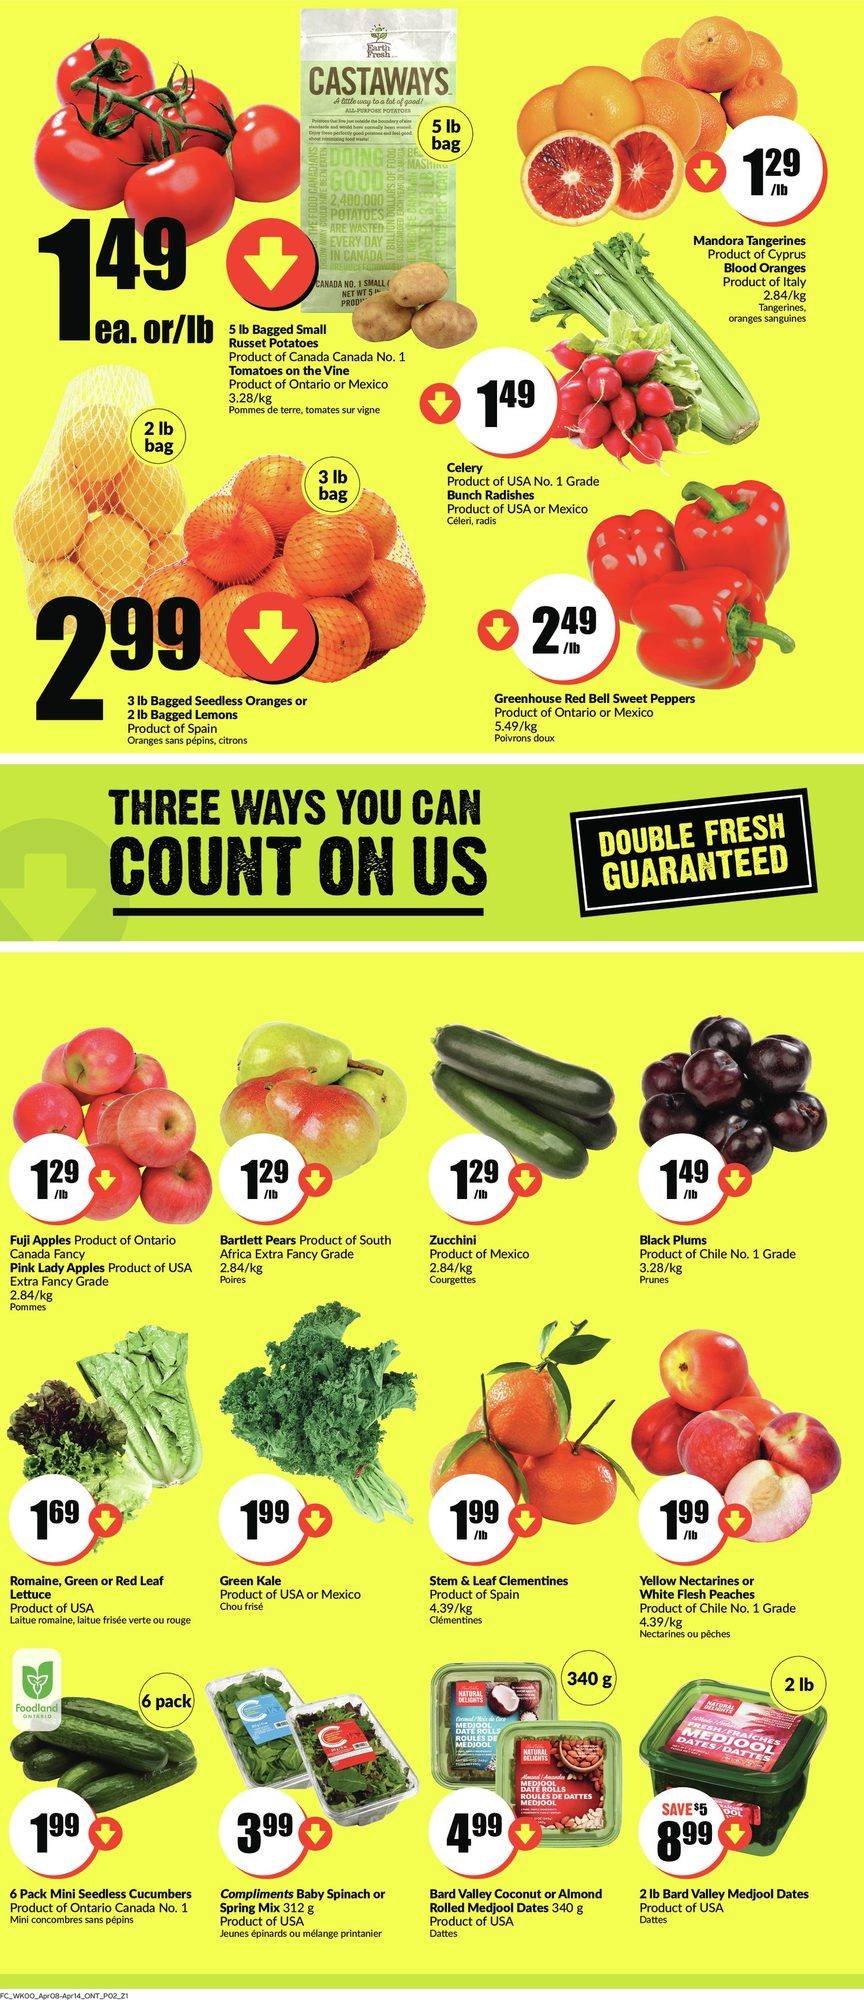 FreshCo - Weekly Flyer Specials - Page 2